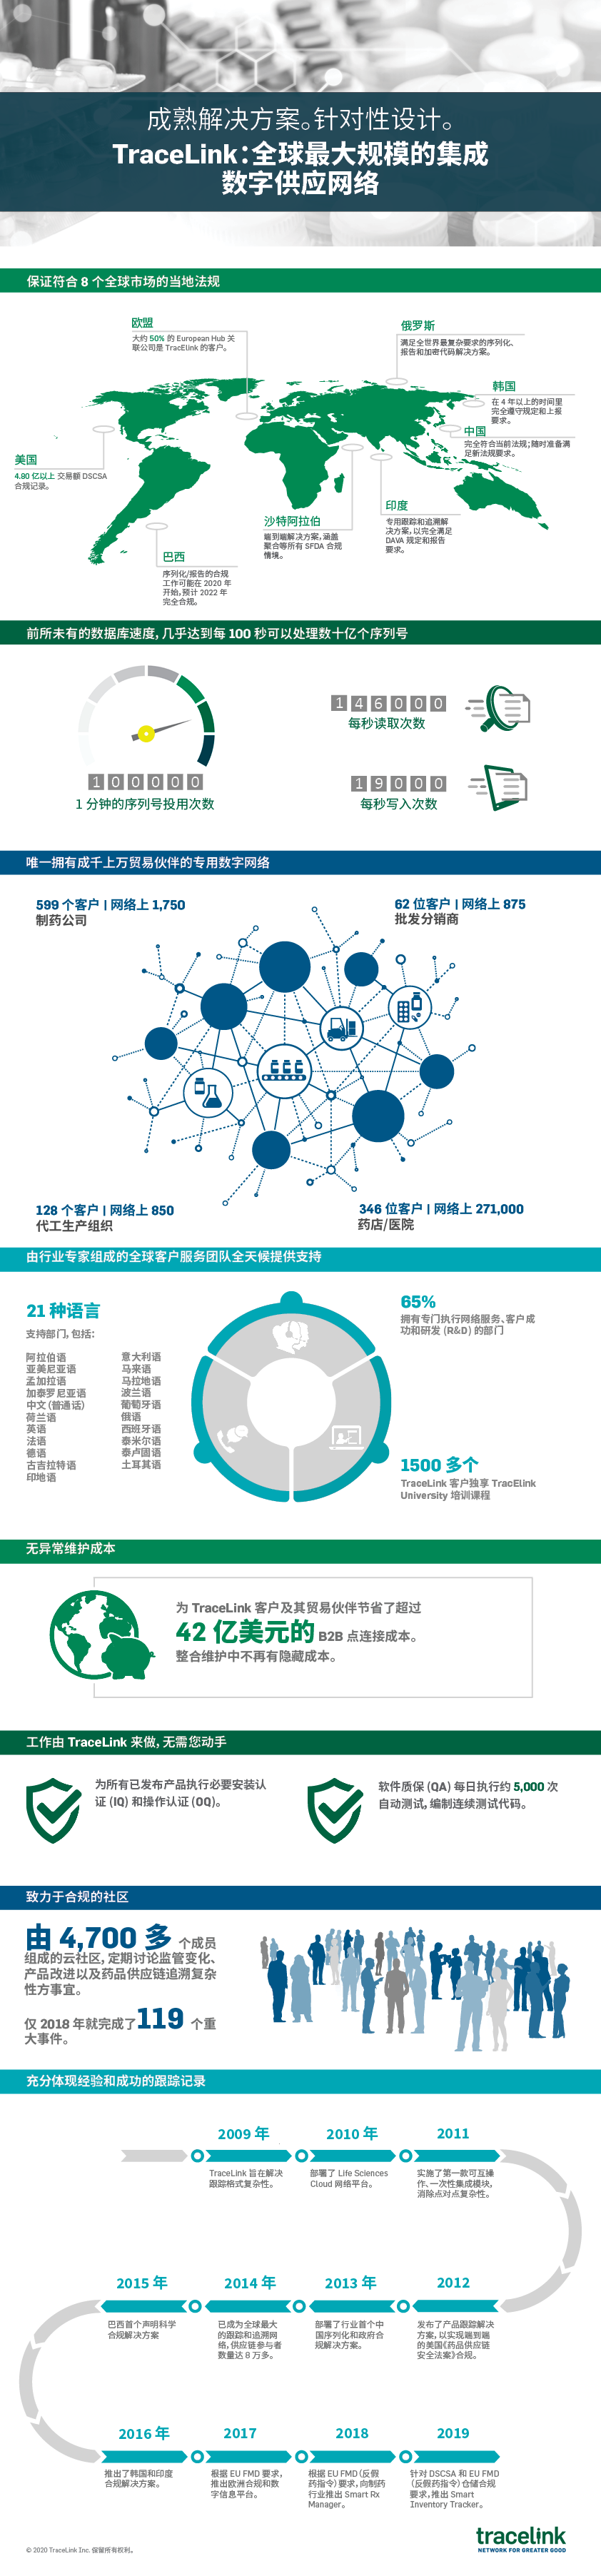 infographic-worlds-largest-digital-supply-network-mandarin.png